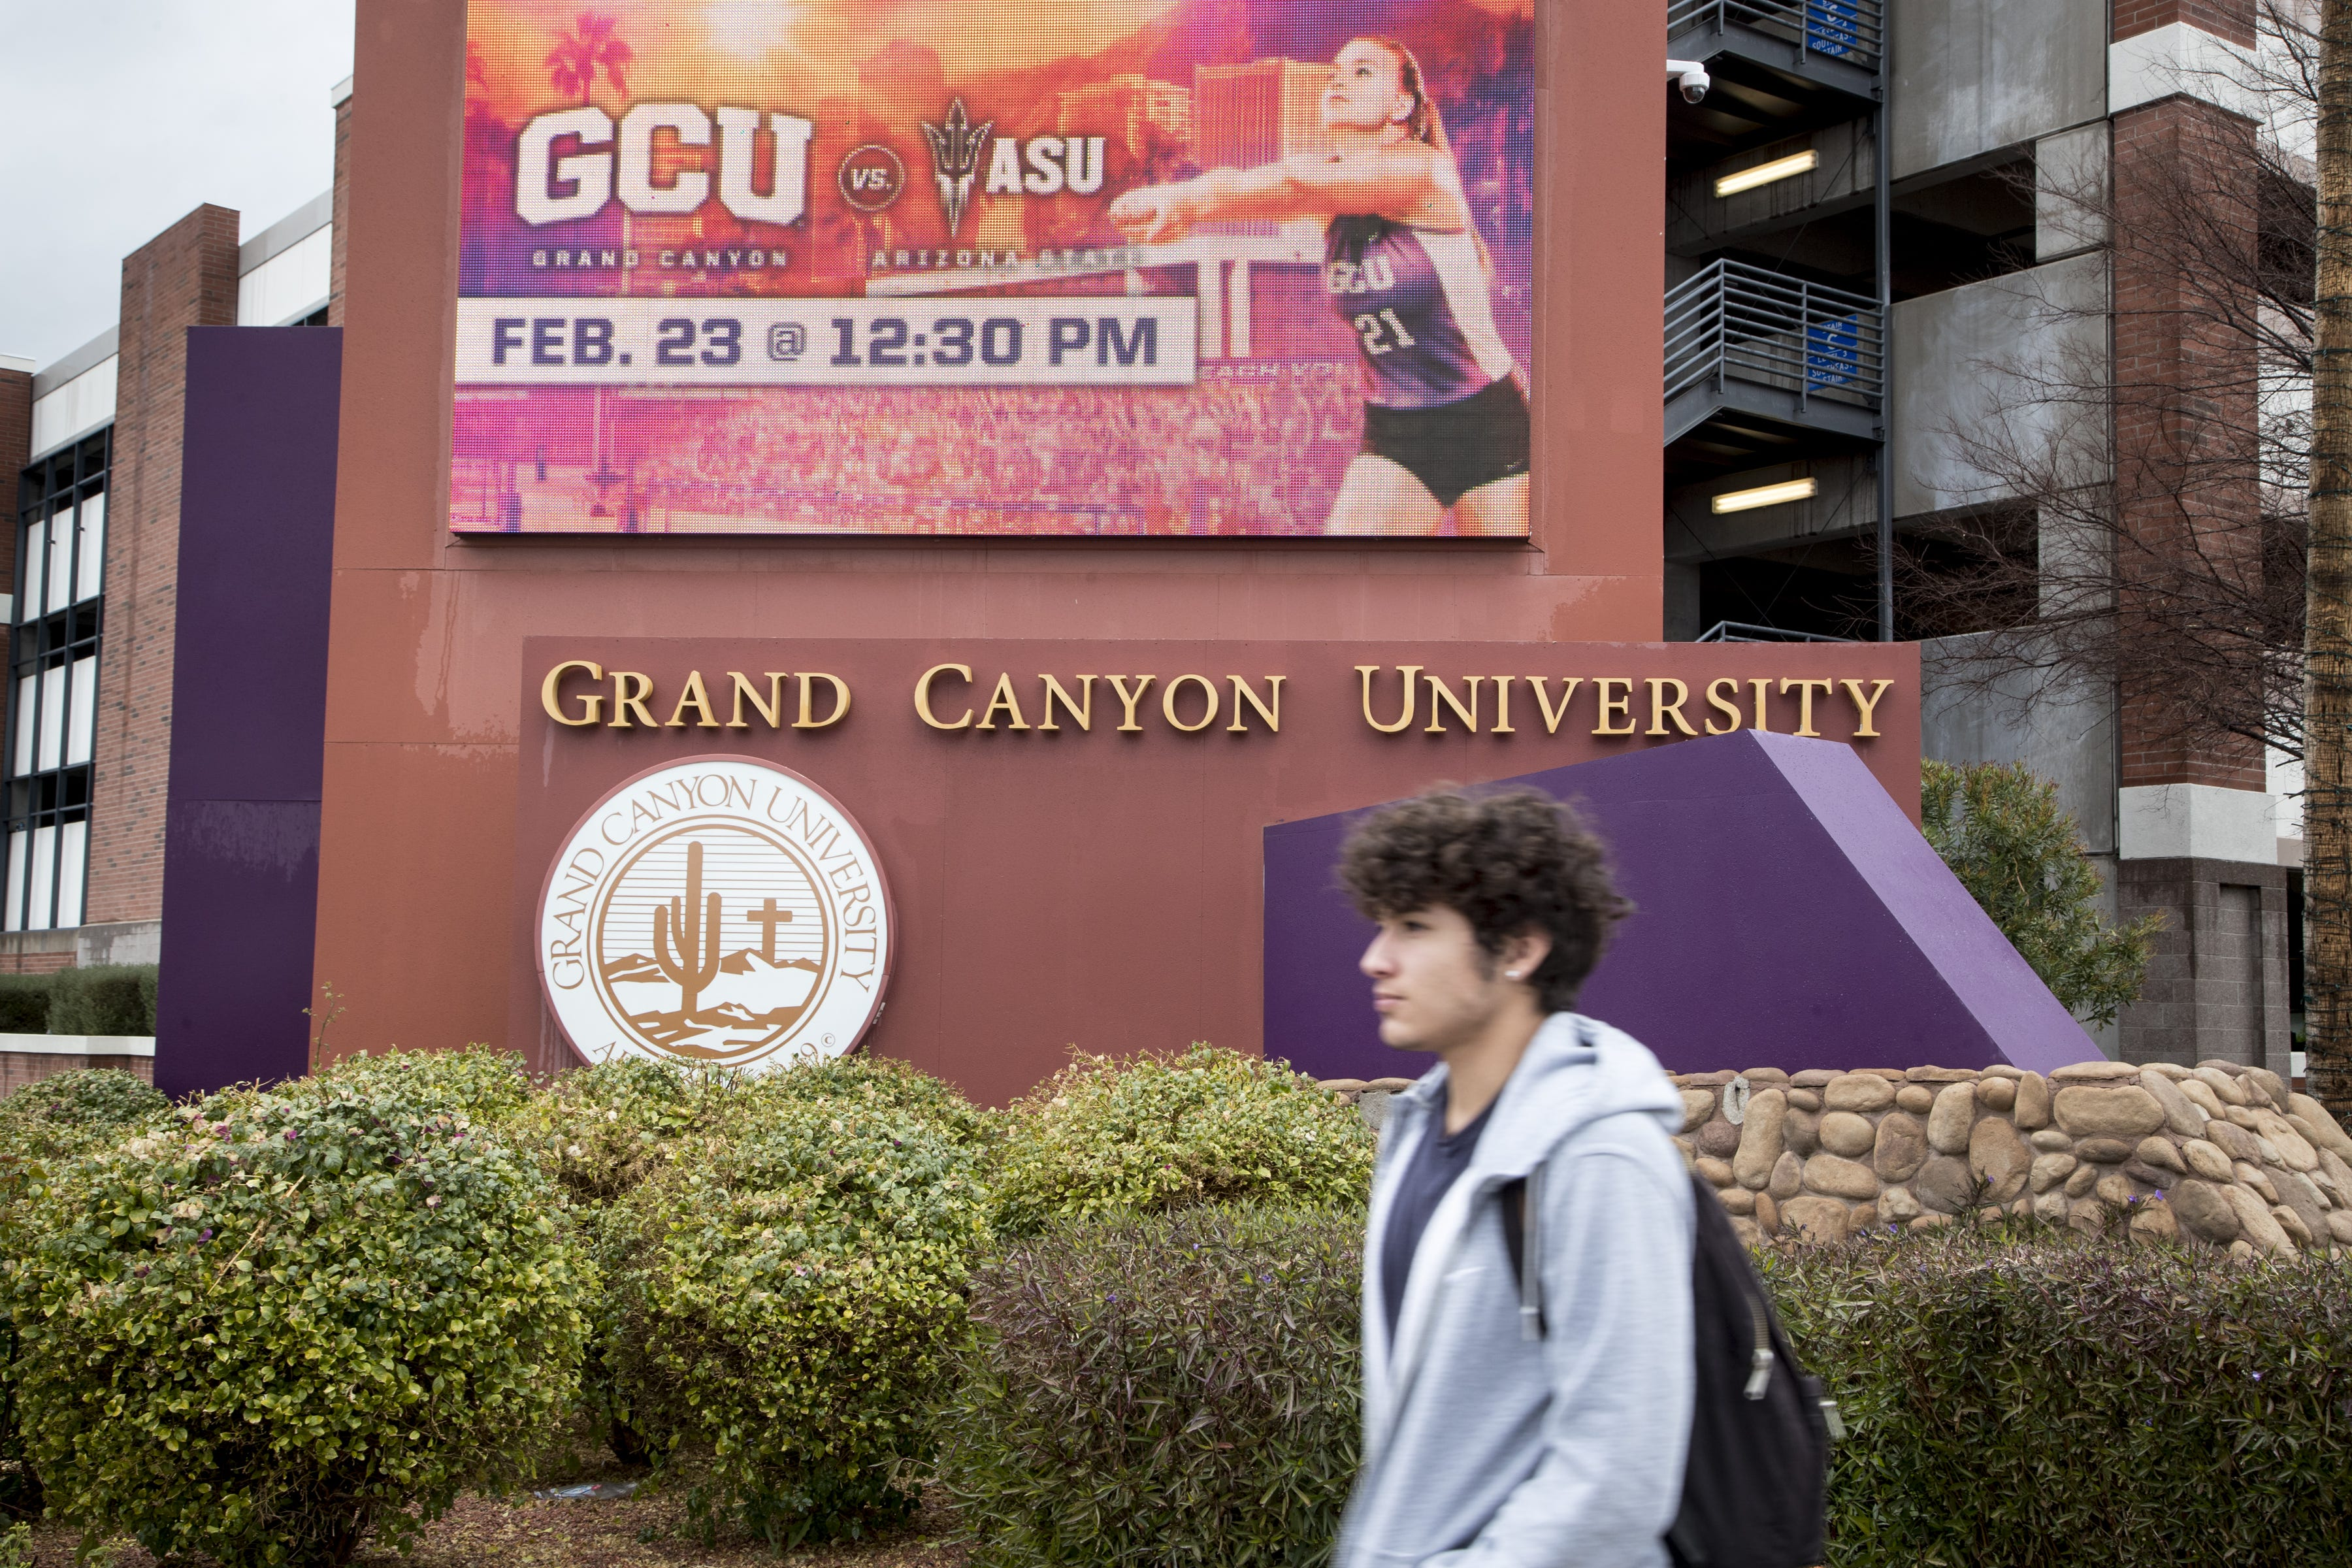 Grand Canyon University must follow for-profit rules despite its return to nonprofit status, feds say